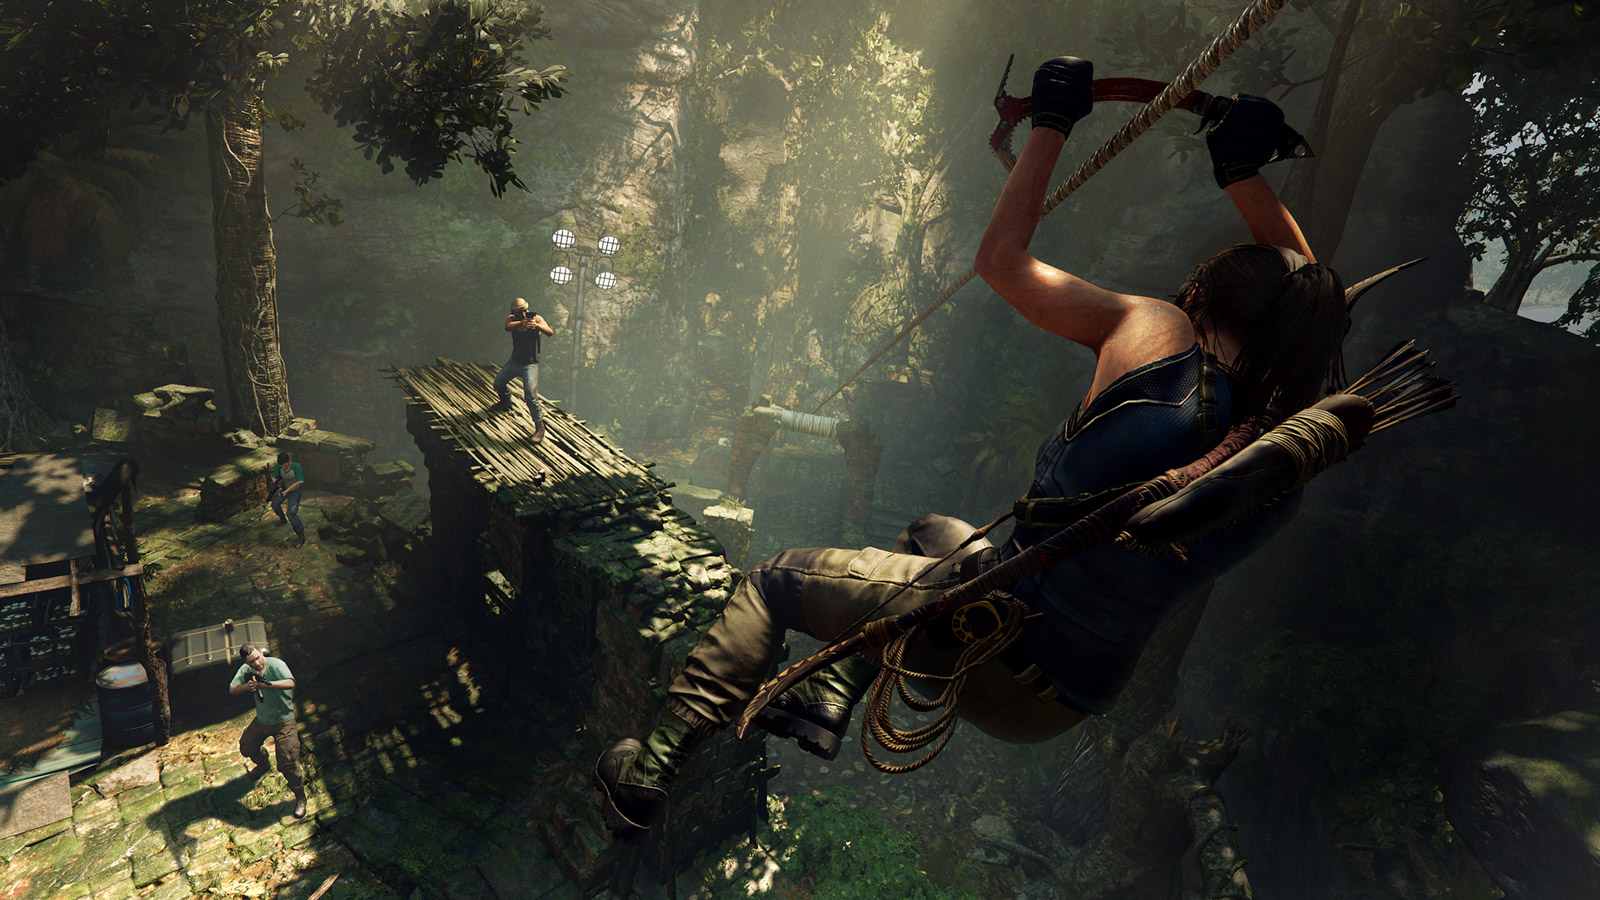 Free Shadow of the Tomb Raider Wallpaper in 1600x900